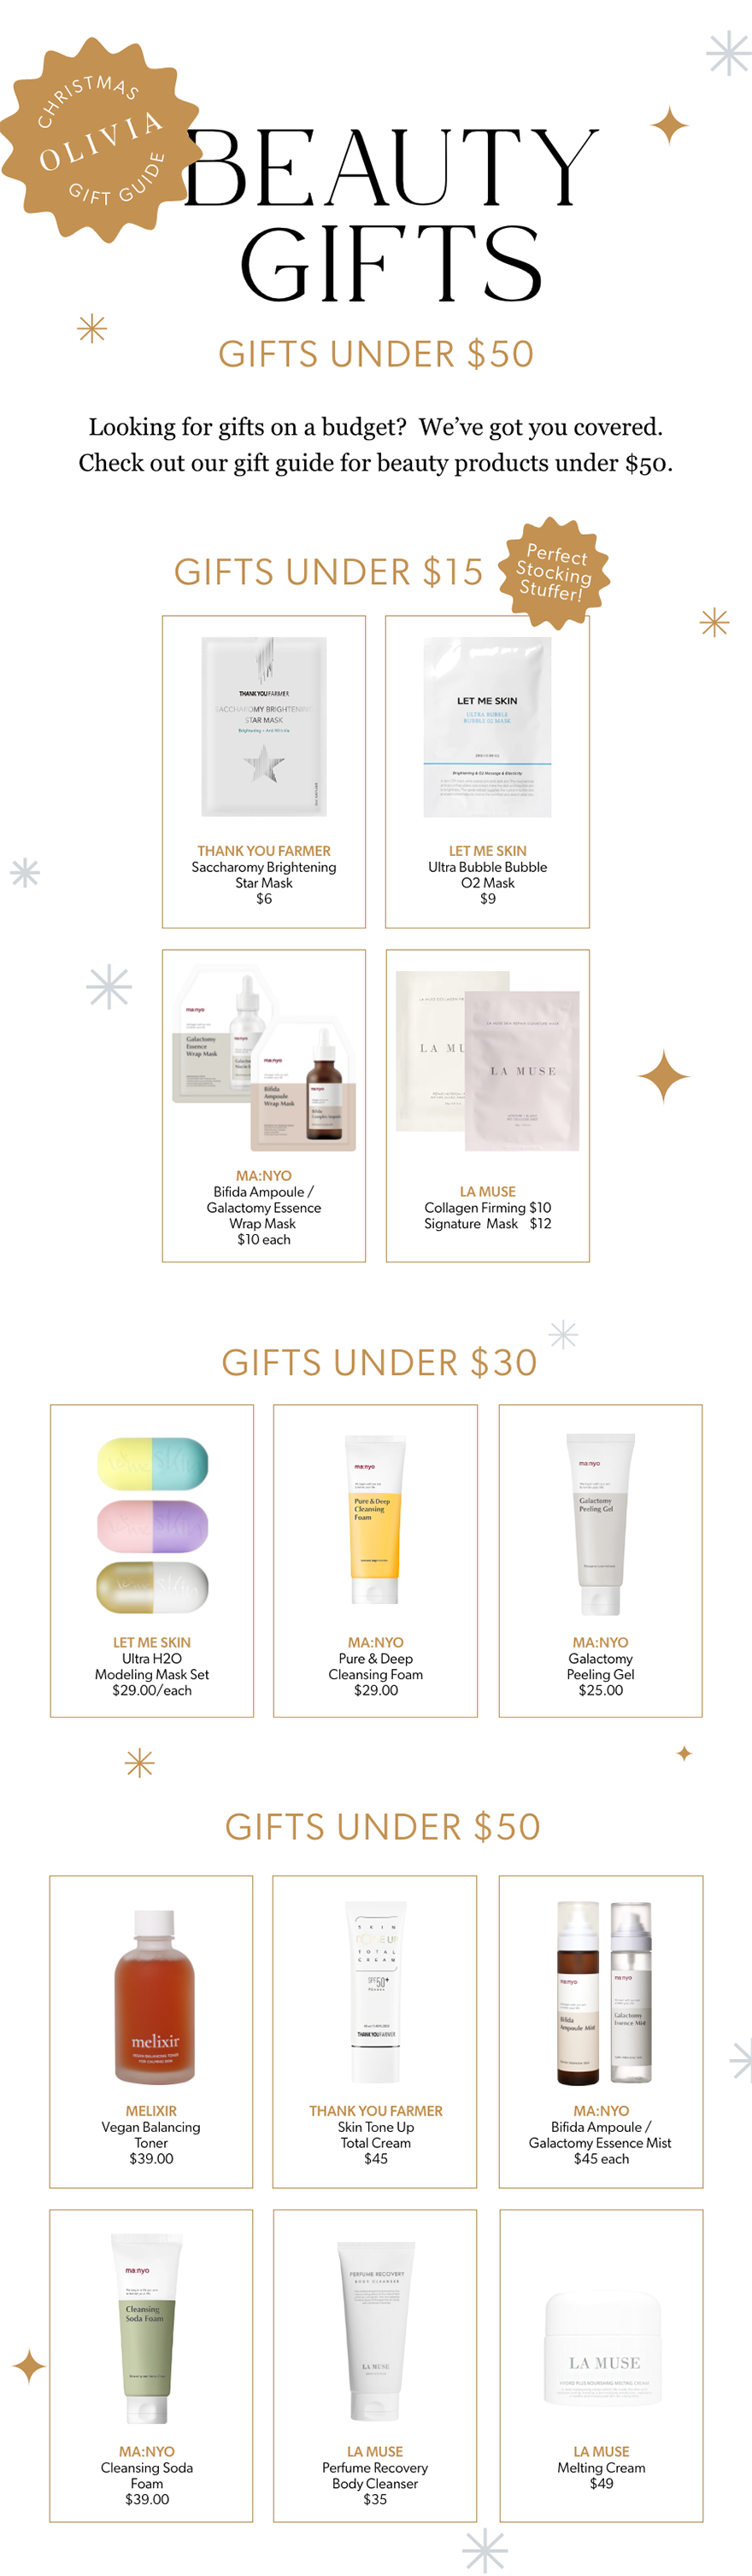 OLIVIA Blog: 2020 Christmas Gift guide